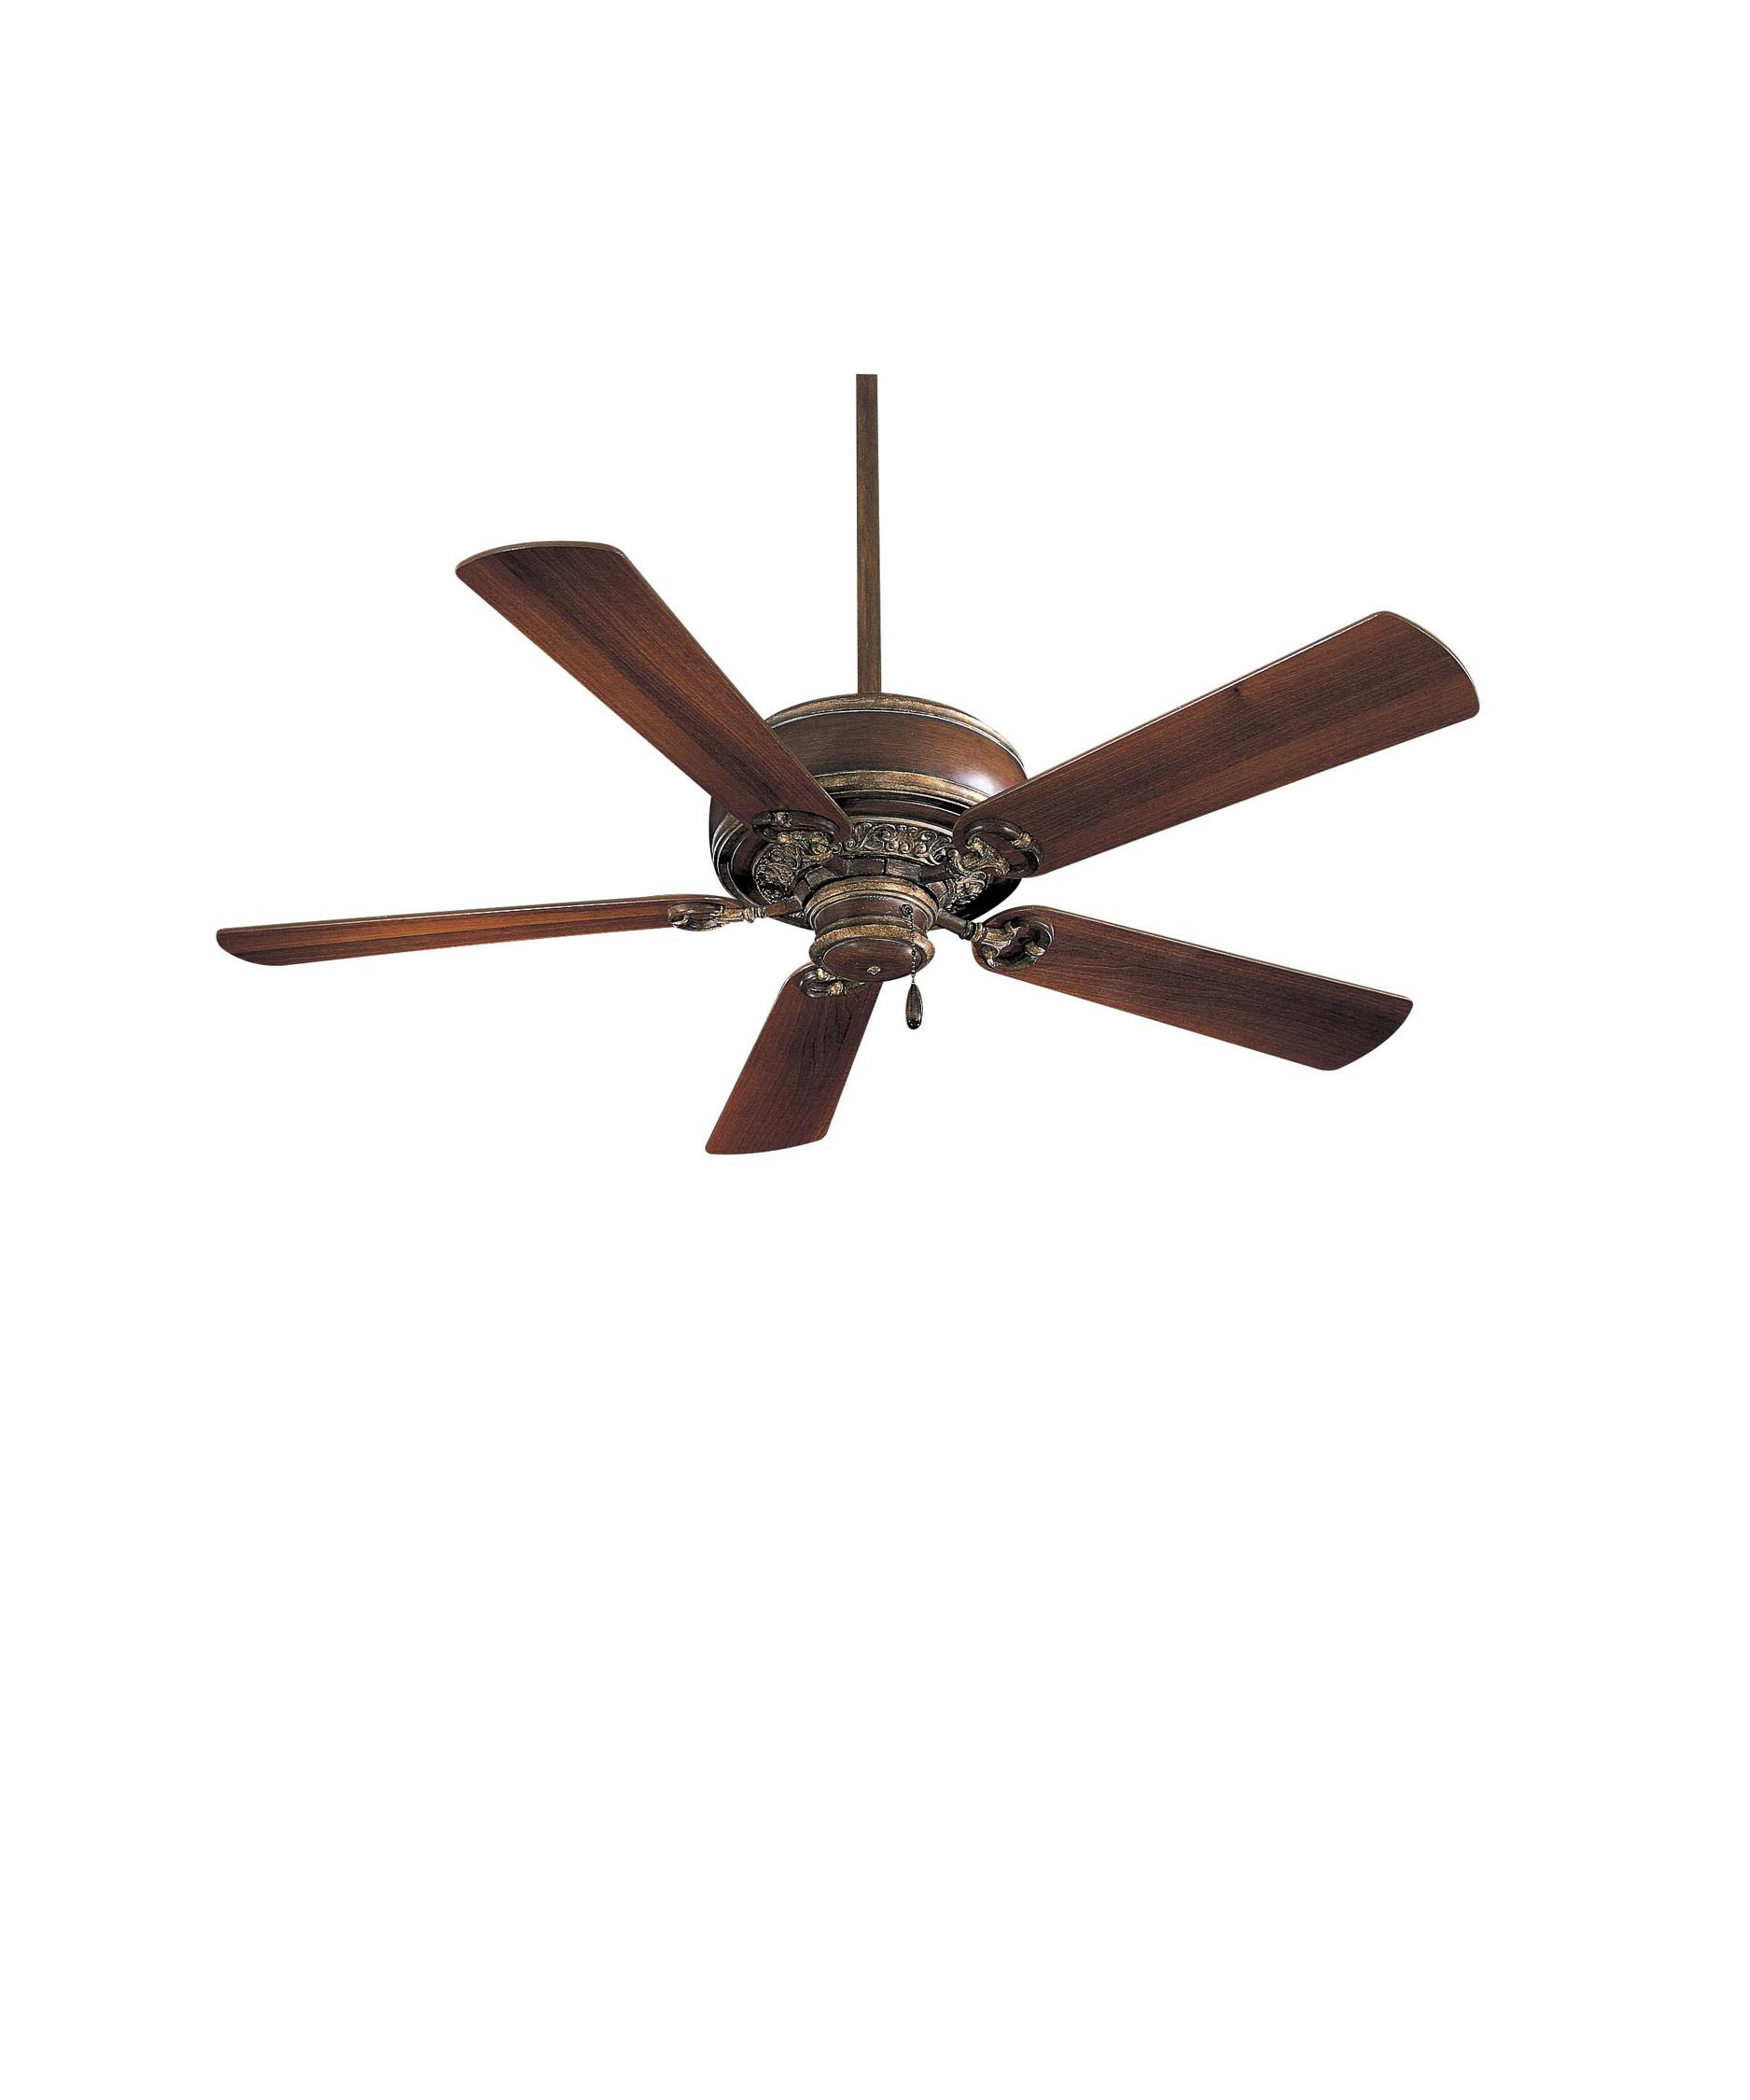 Ac 552 Ceiling Fan : ceiling, First-Class, Ceiling, Officehom